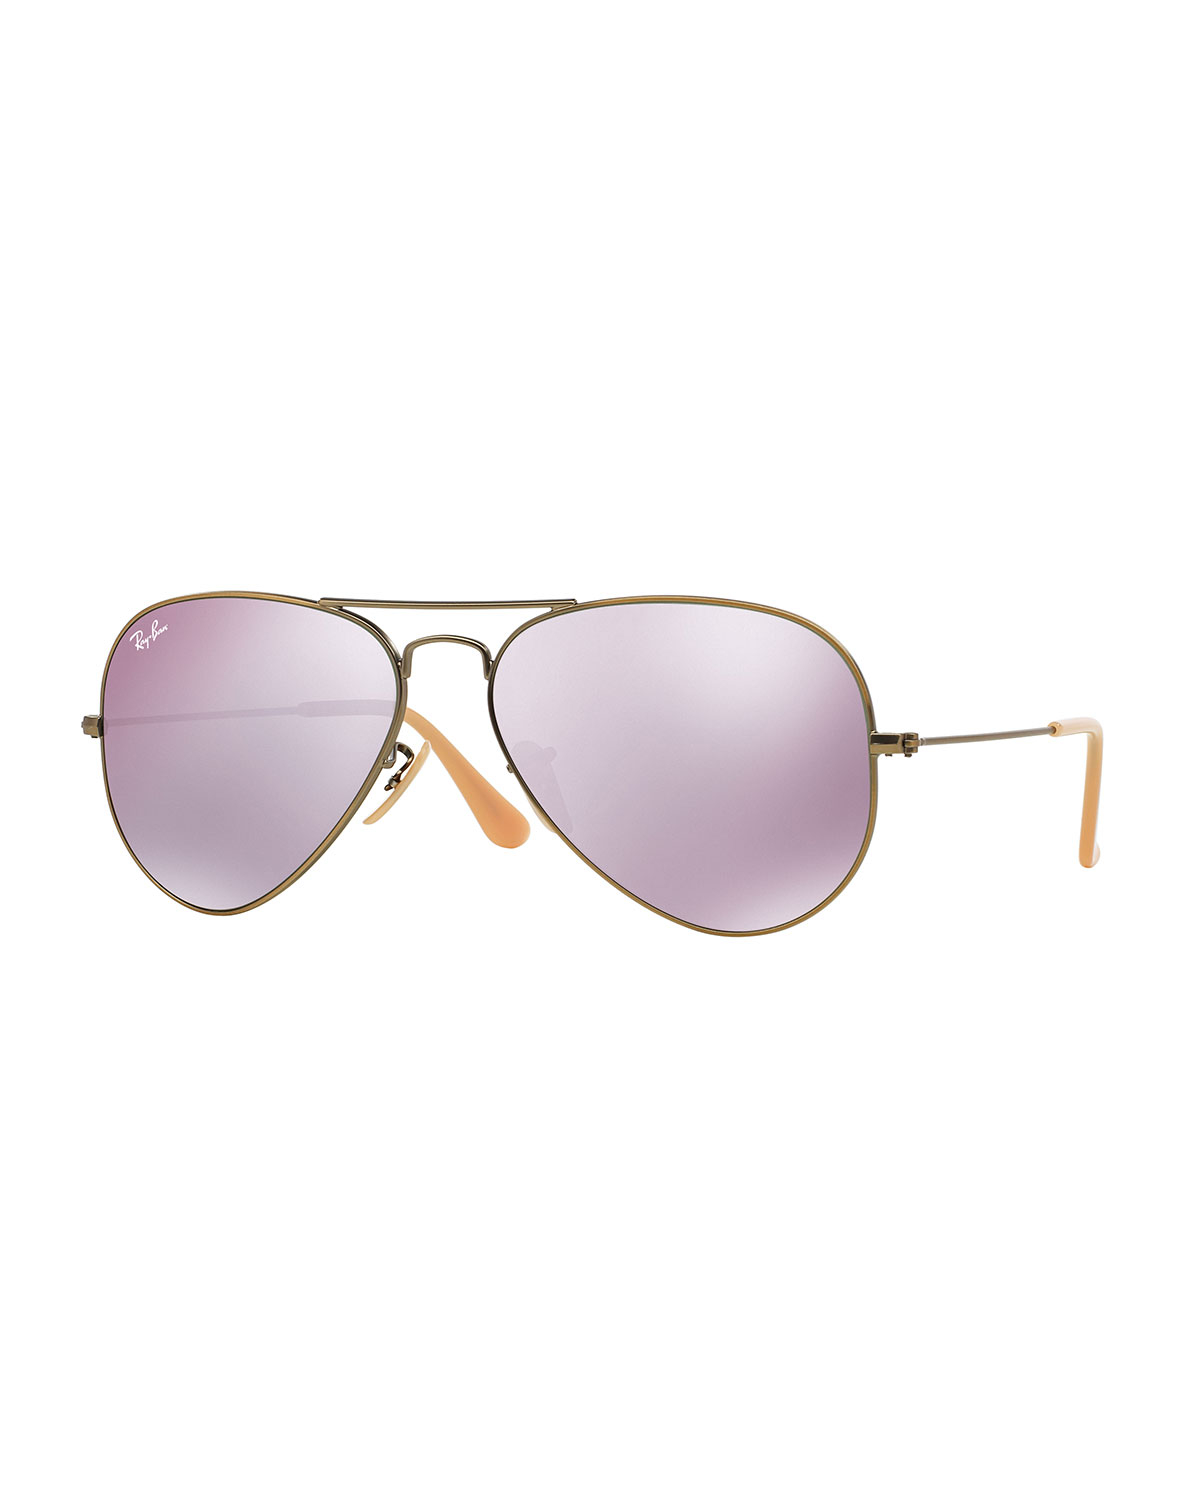 ray ban mirrored aviator sunglasses in purple for men lyst. Black Bedroom Furniture Sets. Home Design Ideas